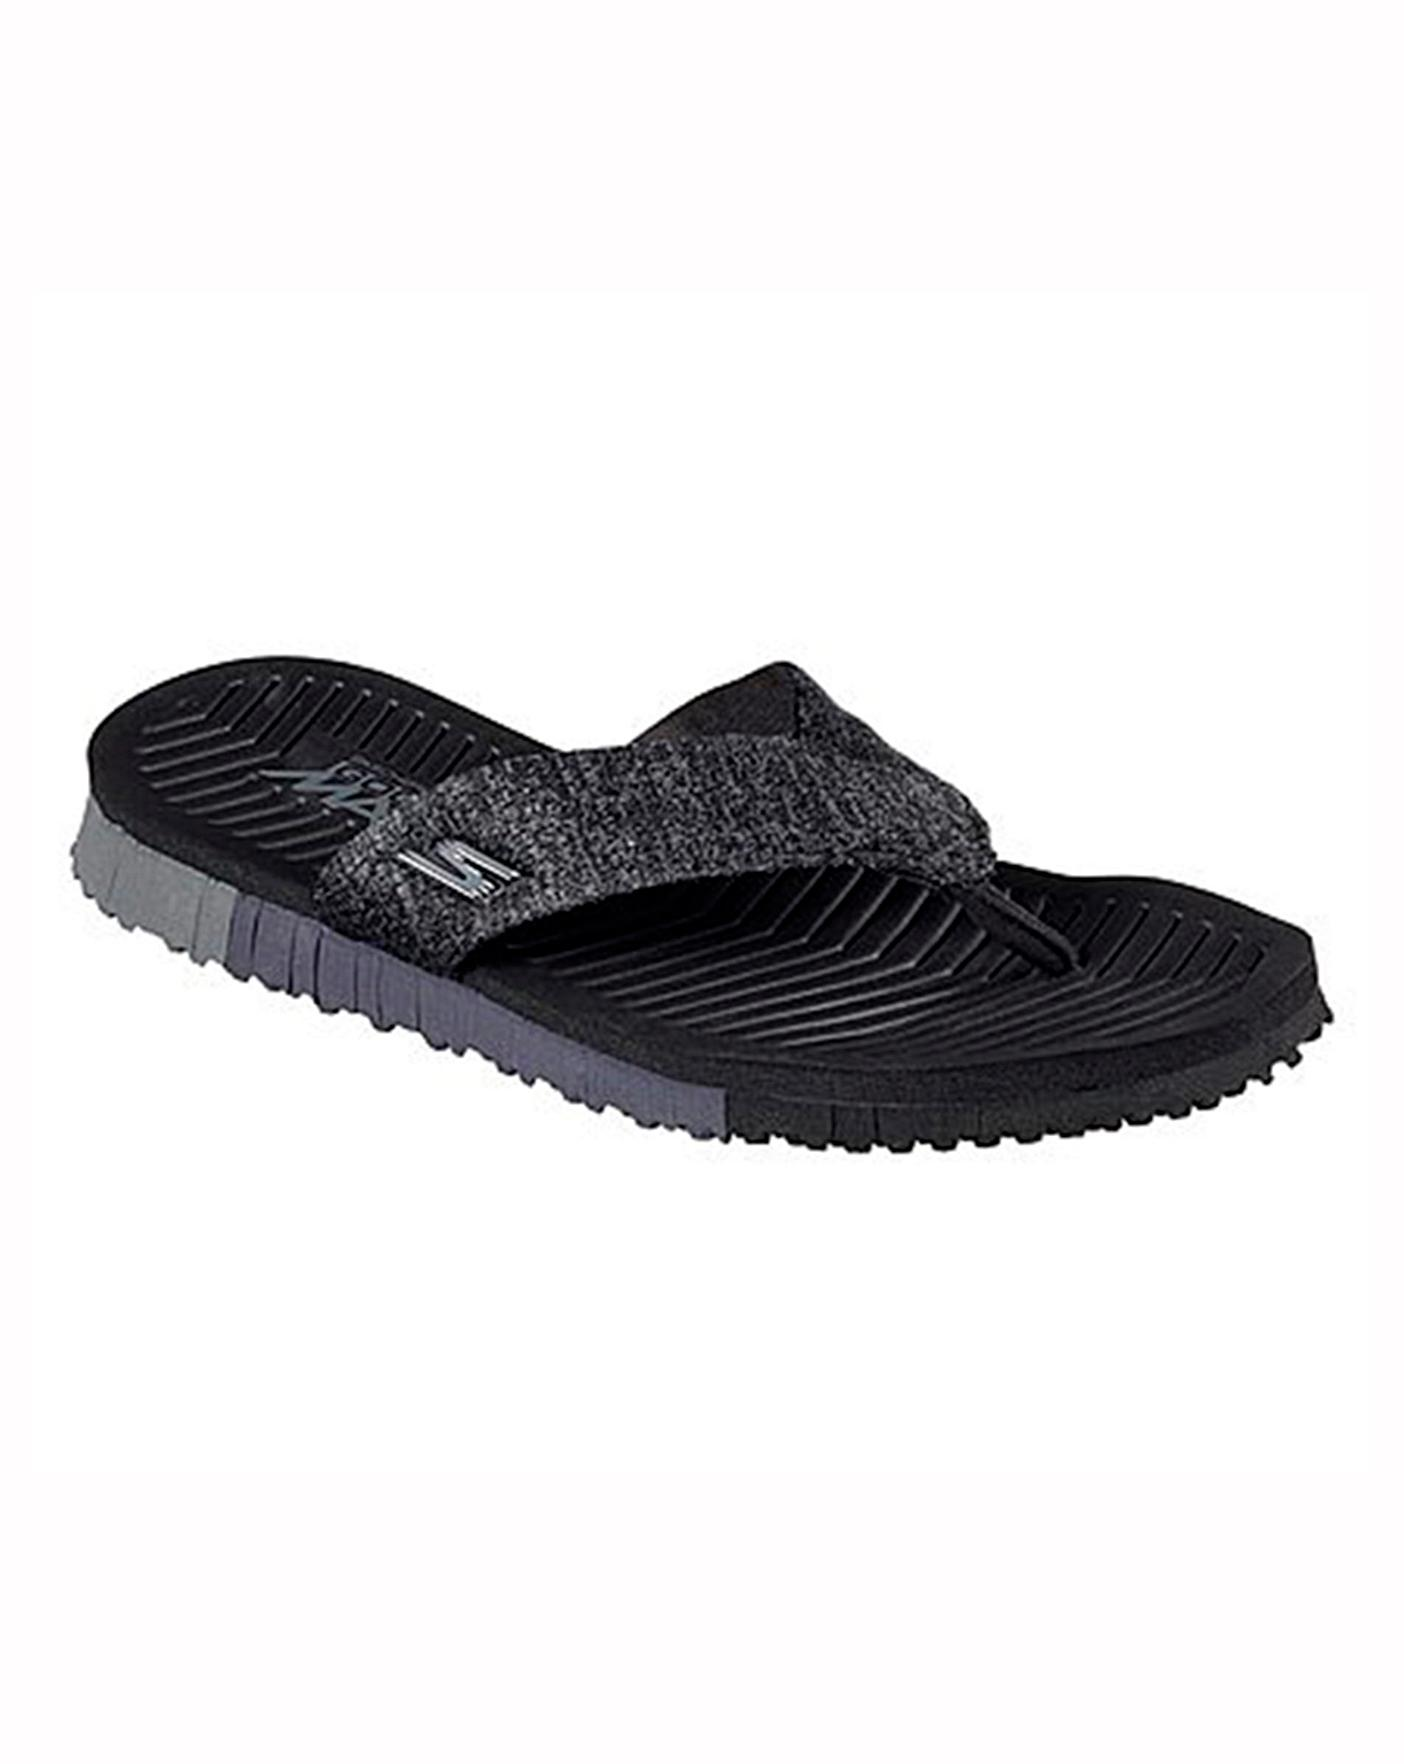 discount shop offer discounts popular stores Skechers Go Flex Solana Sandals